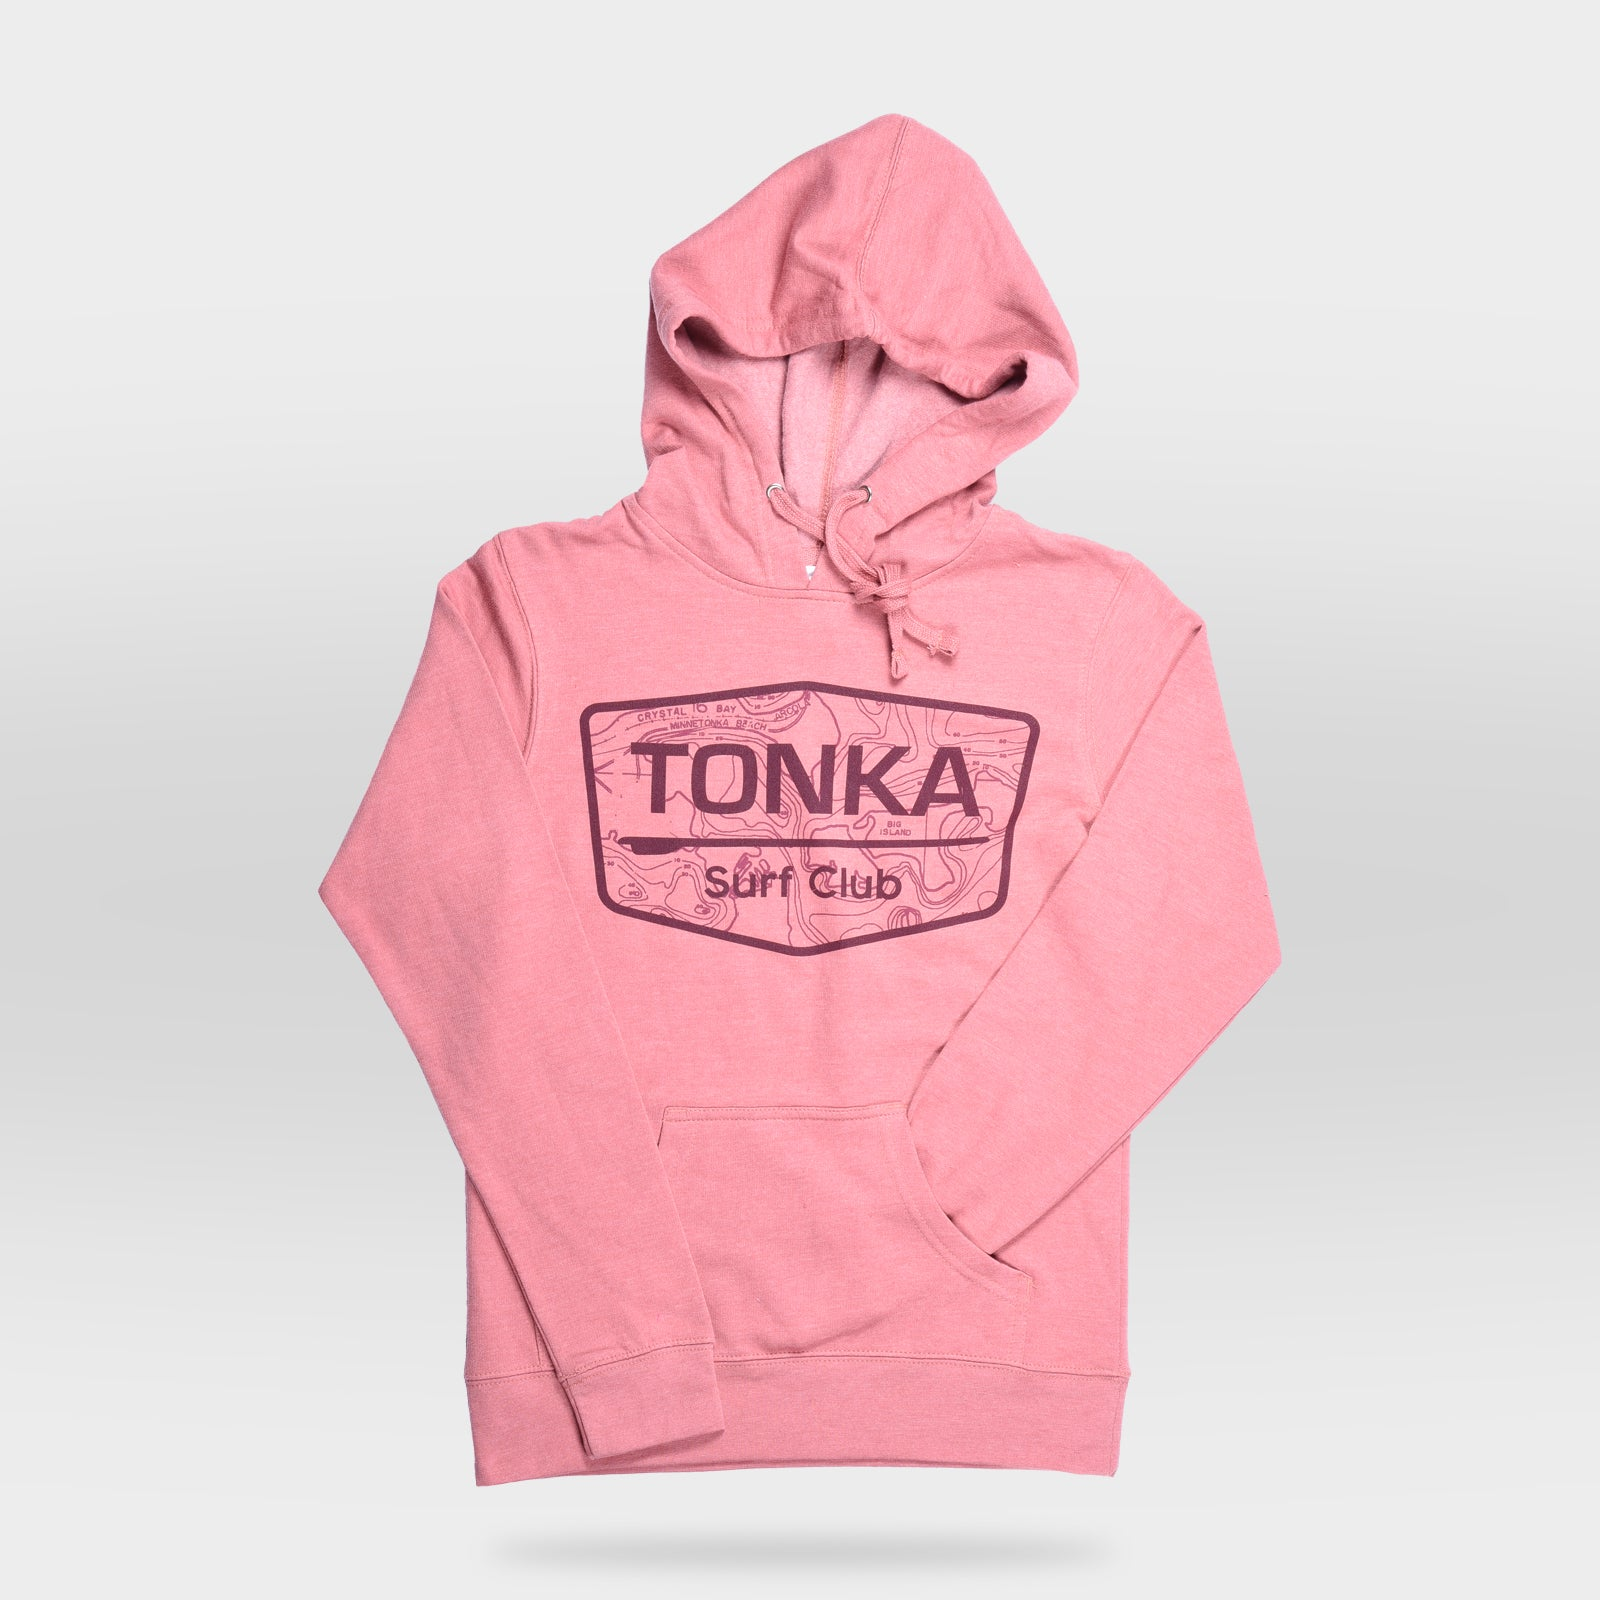 Pink Women's TONKA Surf Club Hoodie Sweatshirt